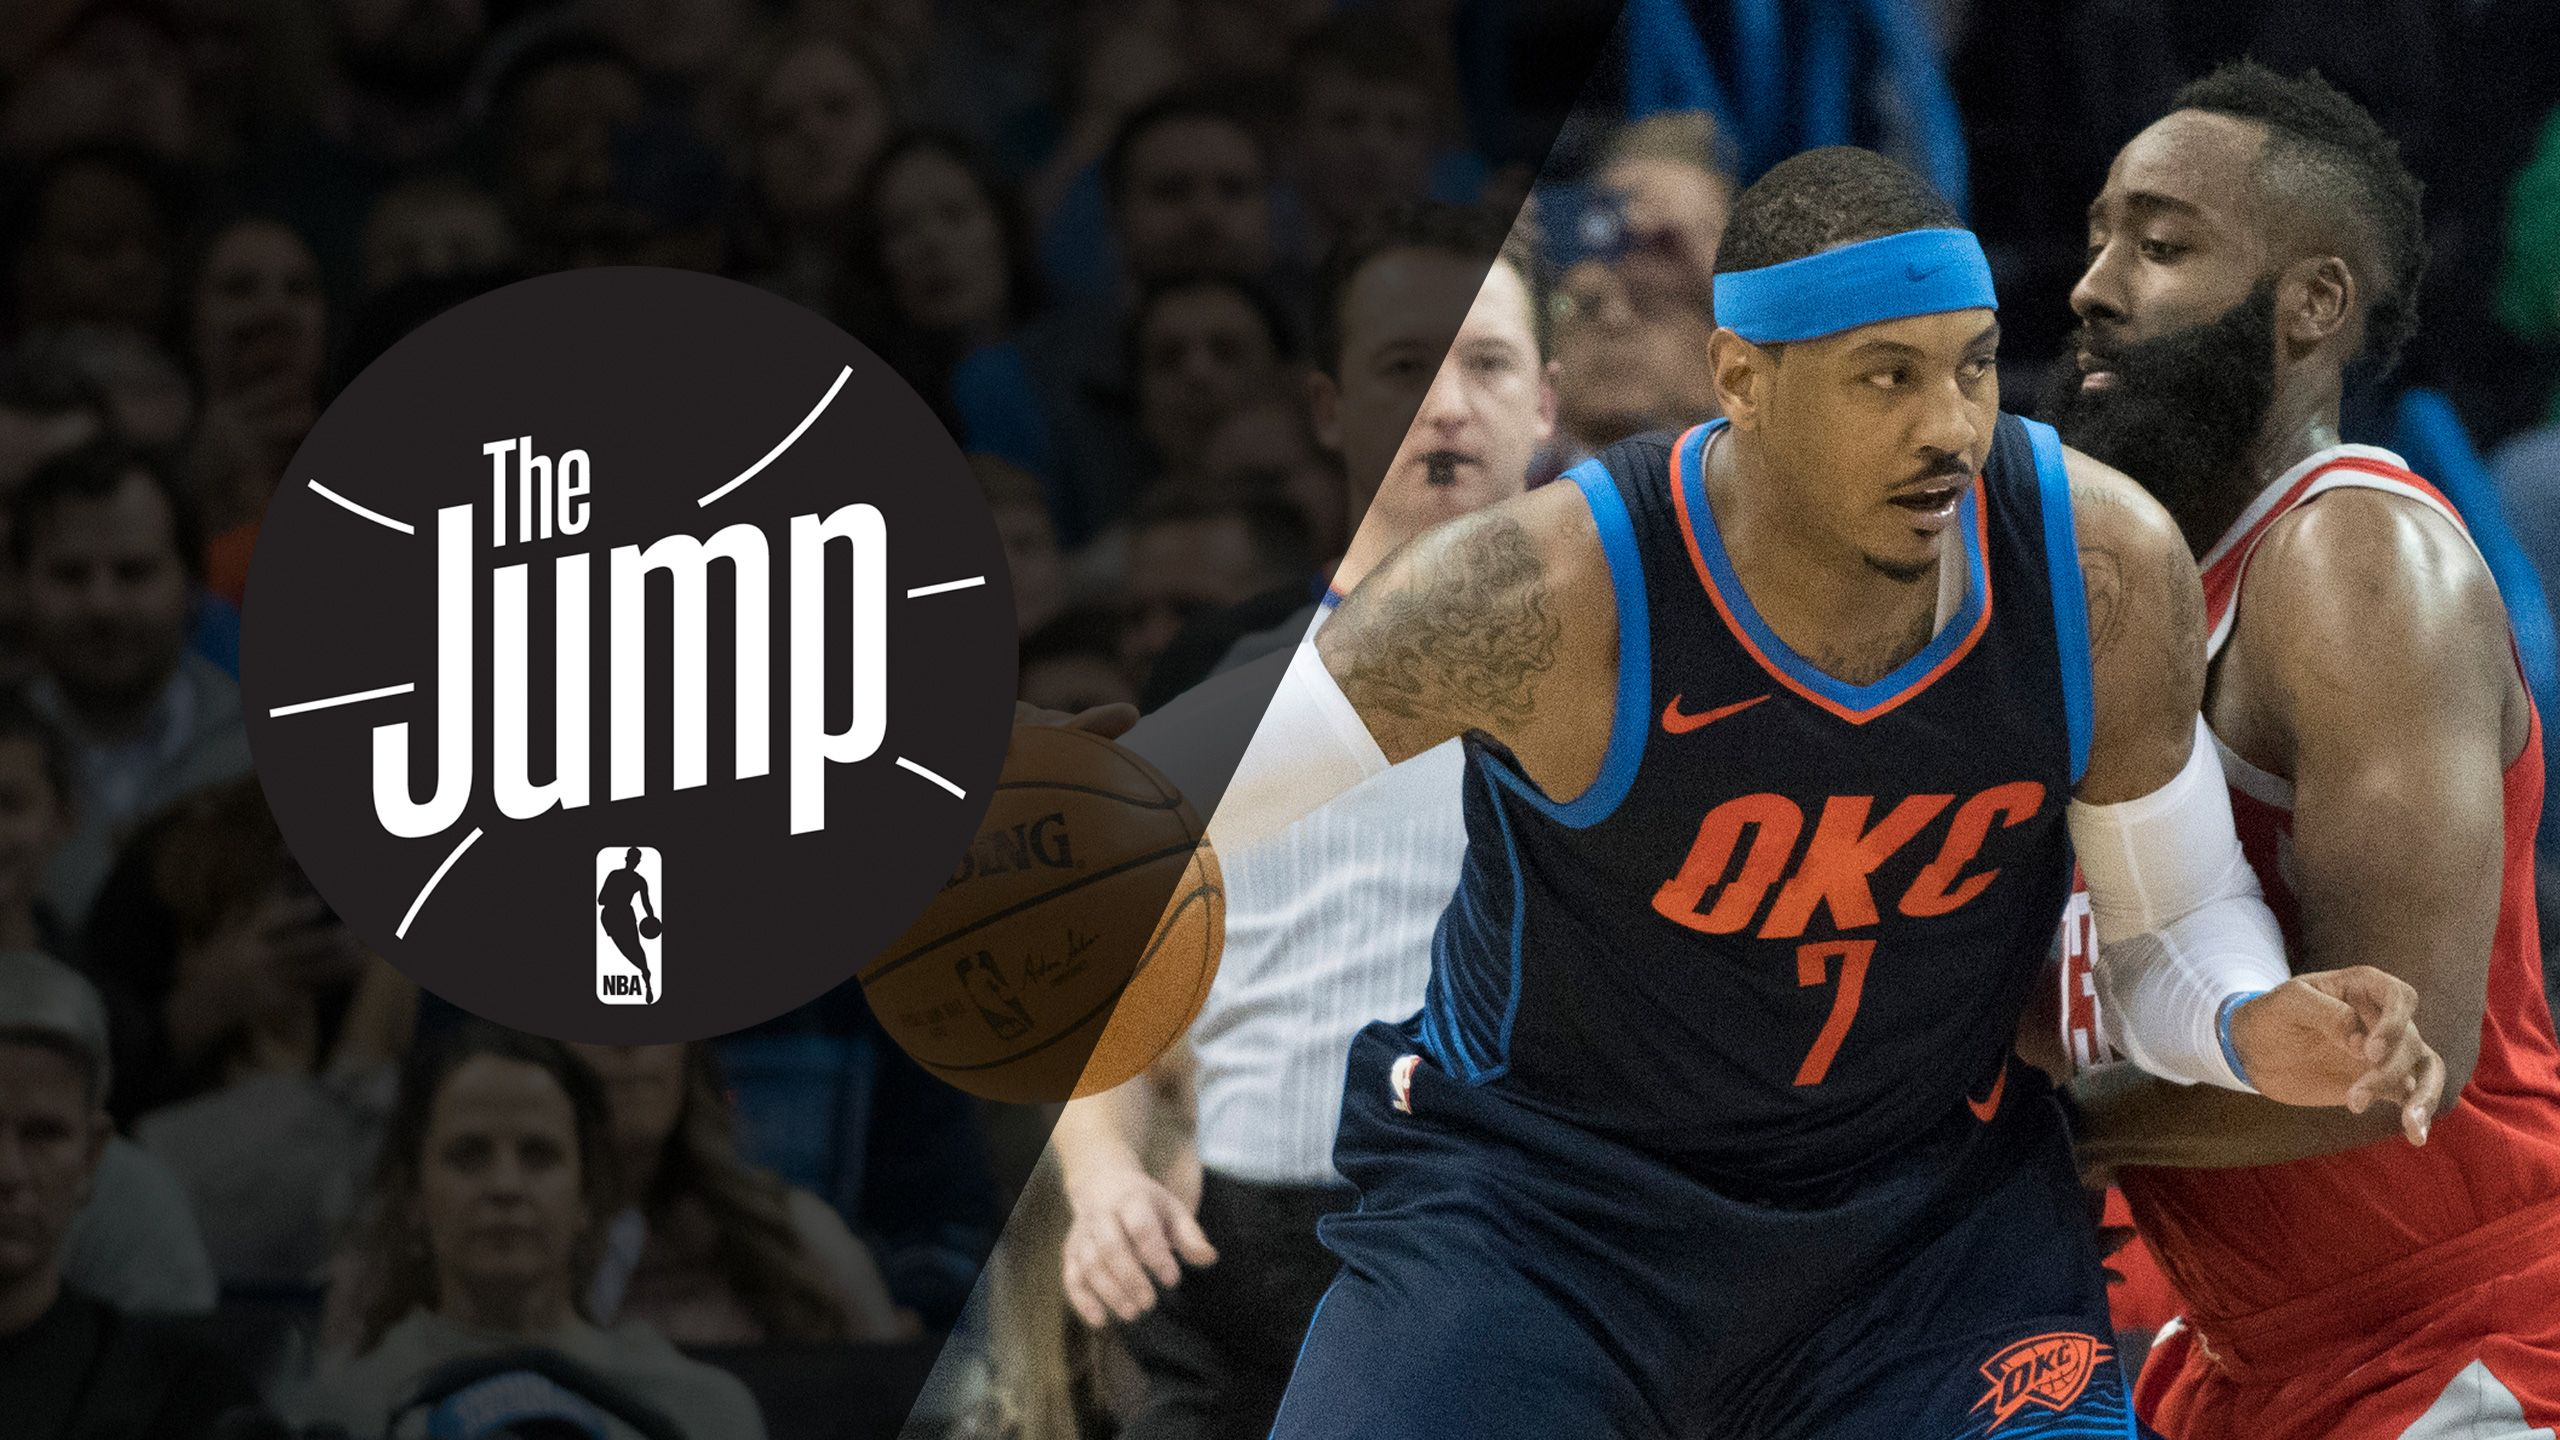 Mon, 8/13 - NBA: The Jump